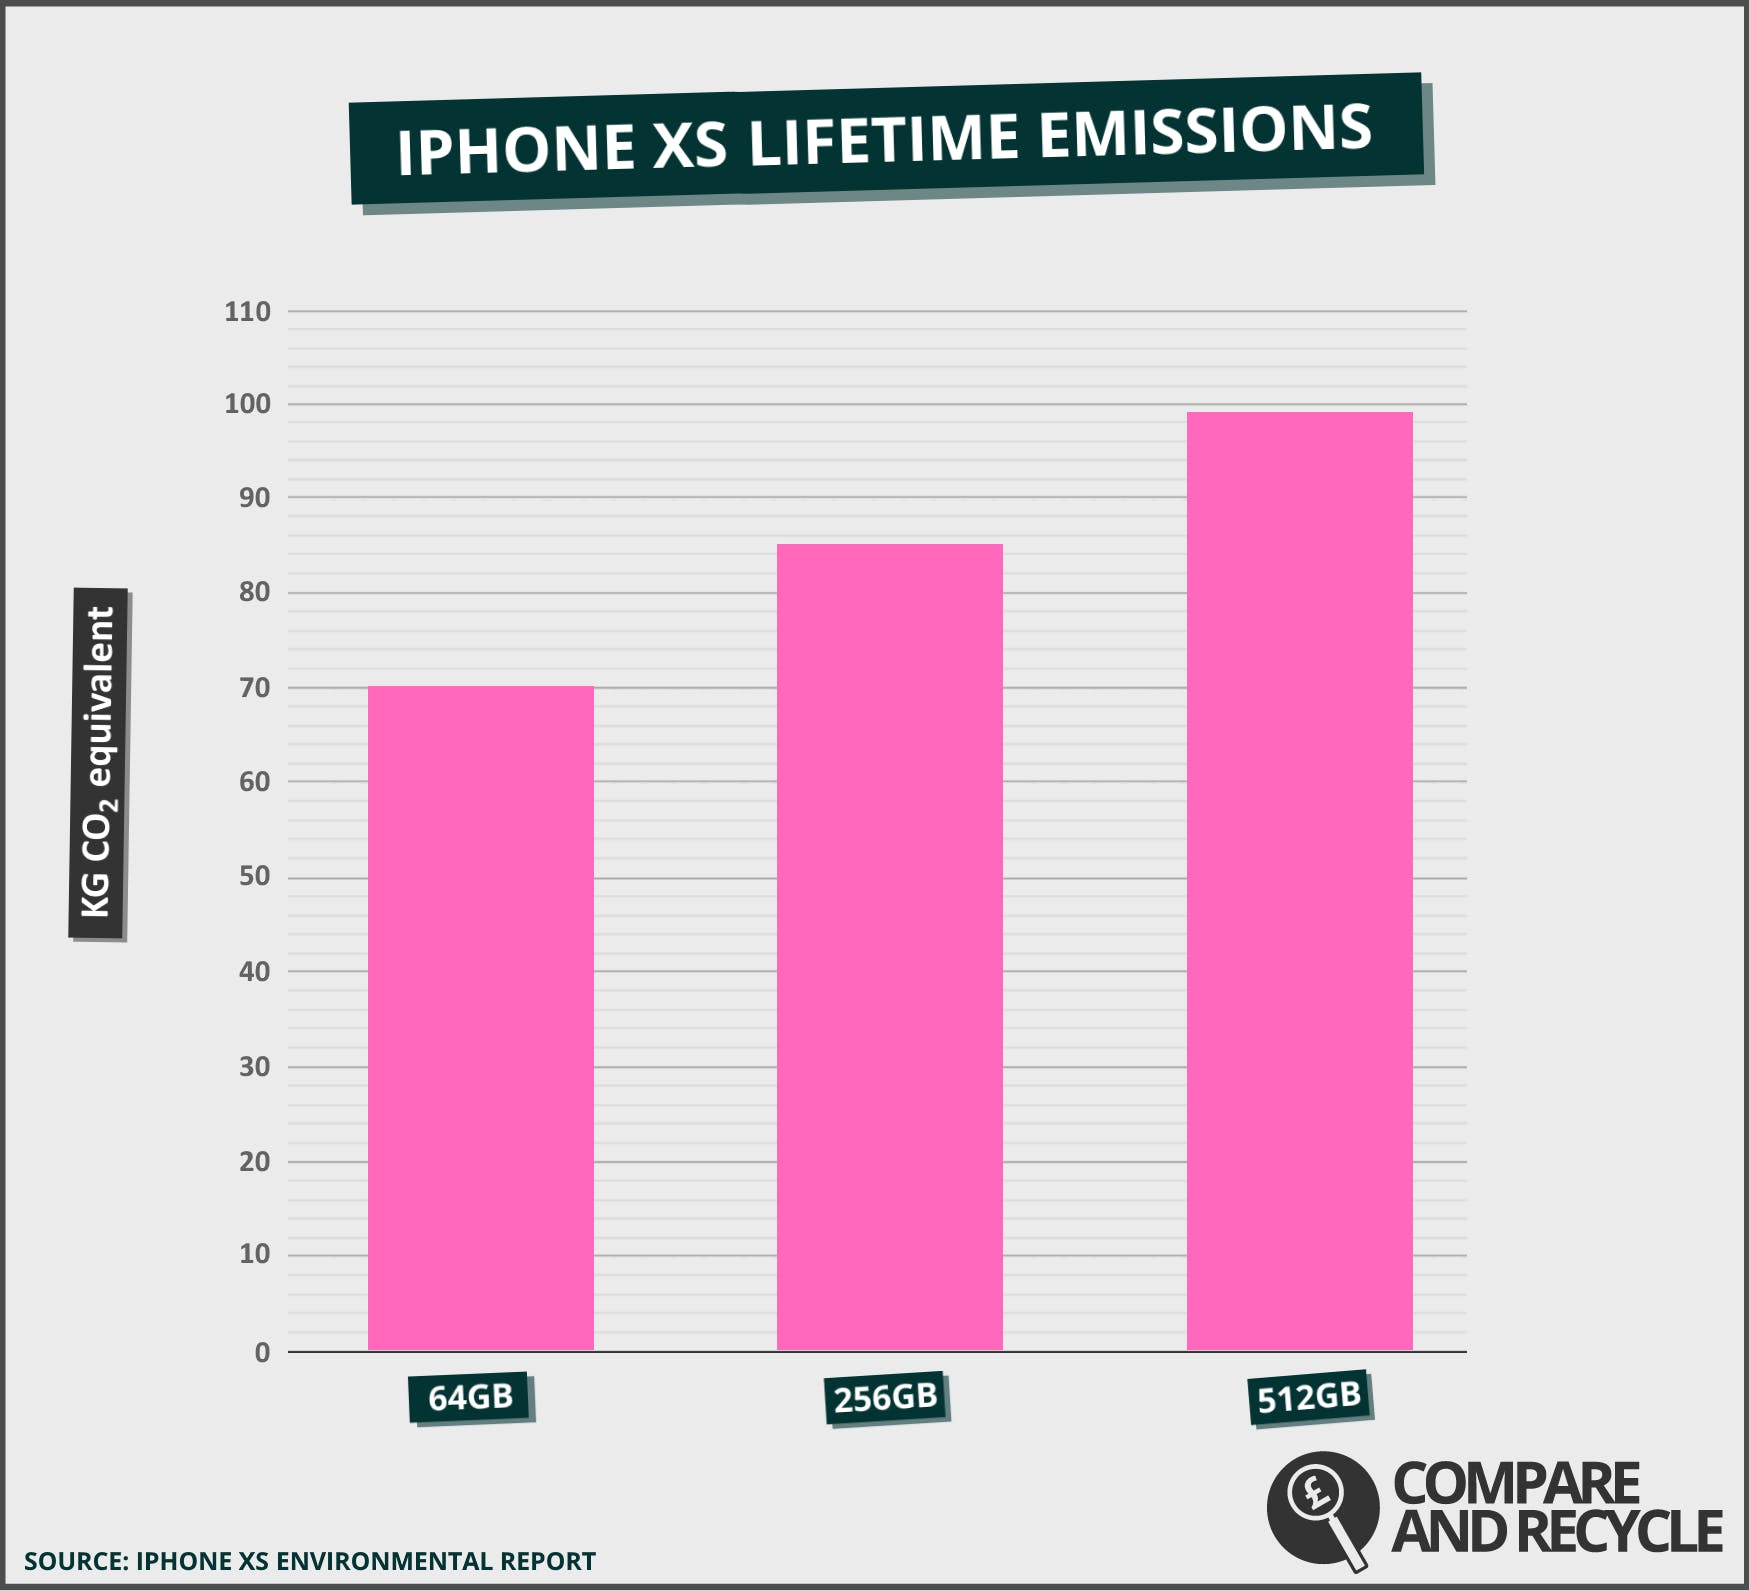 As you can see, lifetime CO2 emissions depend on internal storage capacity and iPhone XS 512GB is less eco-friendly than 64GB variant.